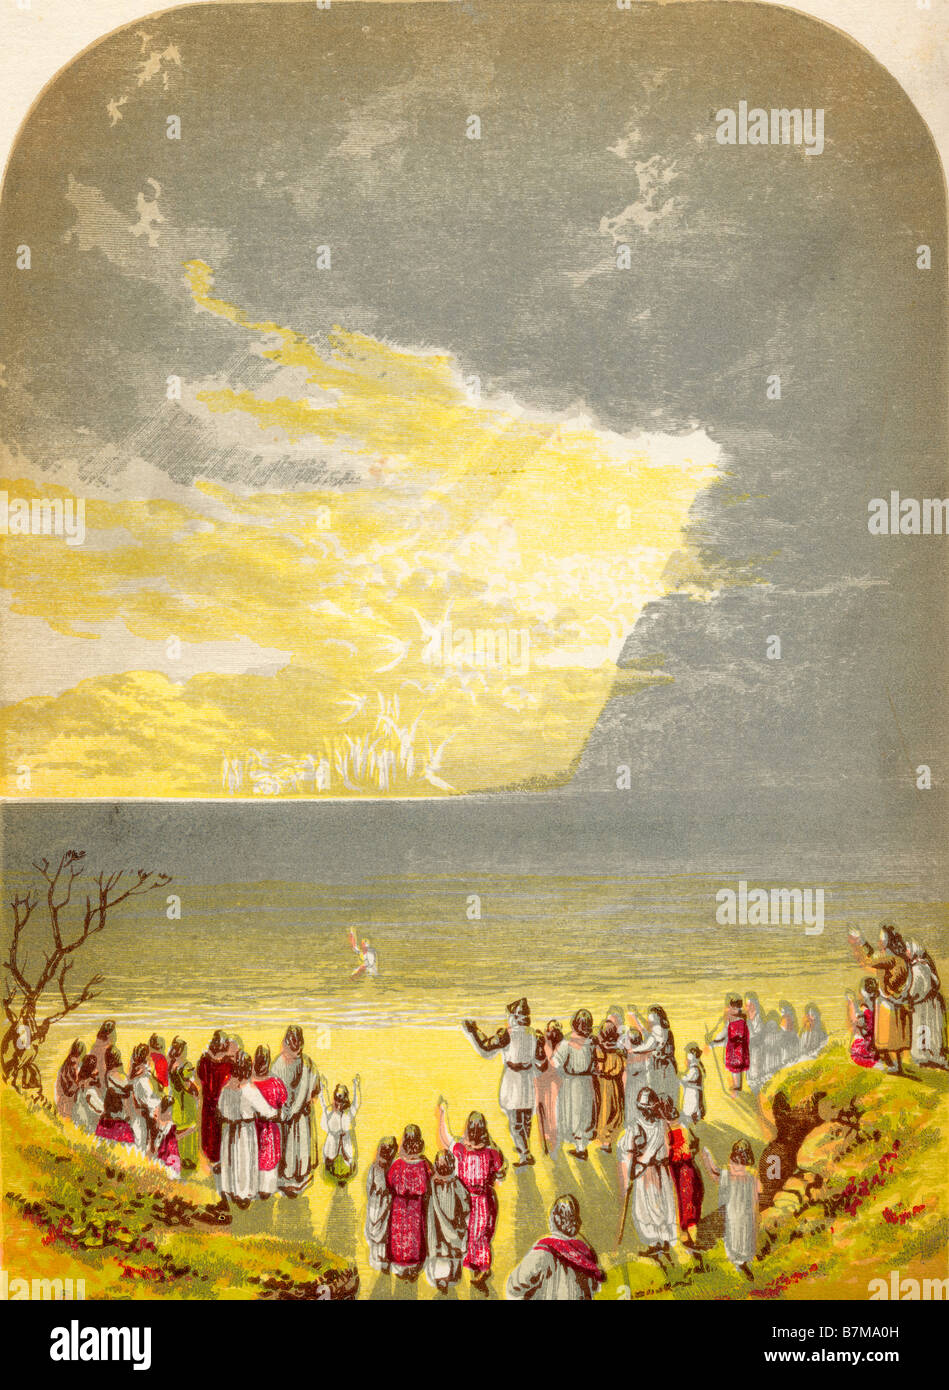 Christian Crossing the River Illustration by A F Lydon From the book The Pilgrims Progress by John Bunyan published - Stock Image